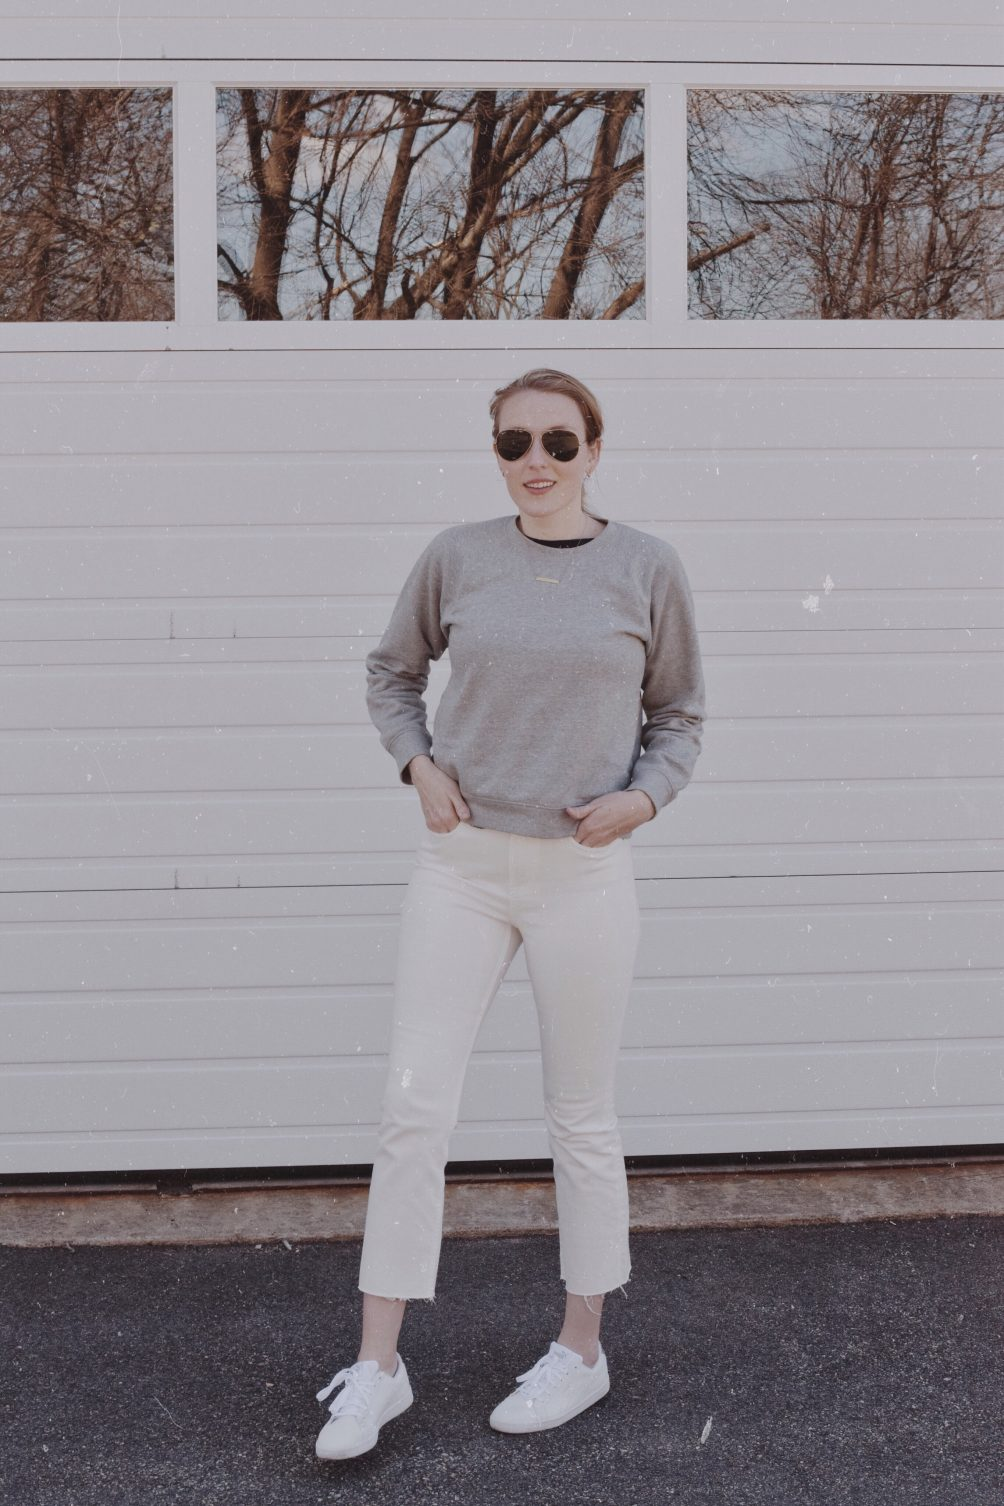 styling casual weekend neutrals for spring with Everlane jeans, crewneck sweatshirt, white sneakers, and aviators